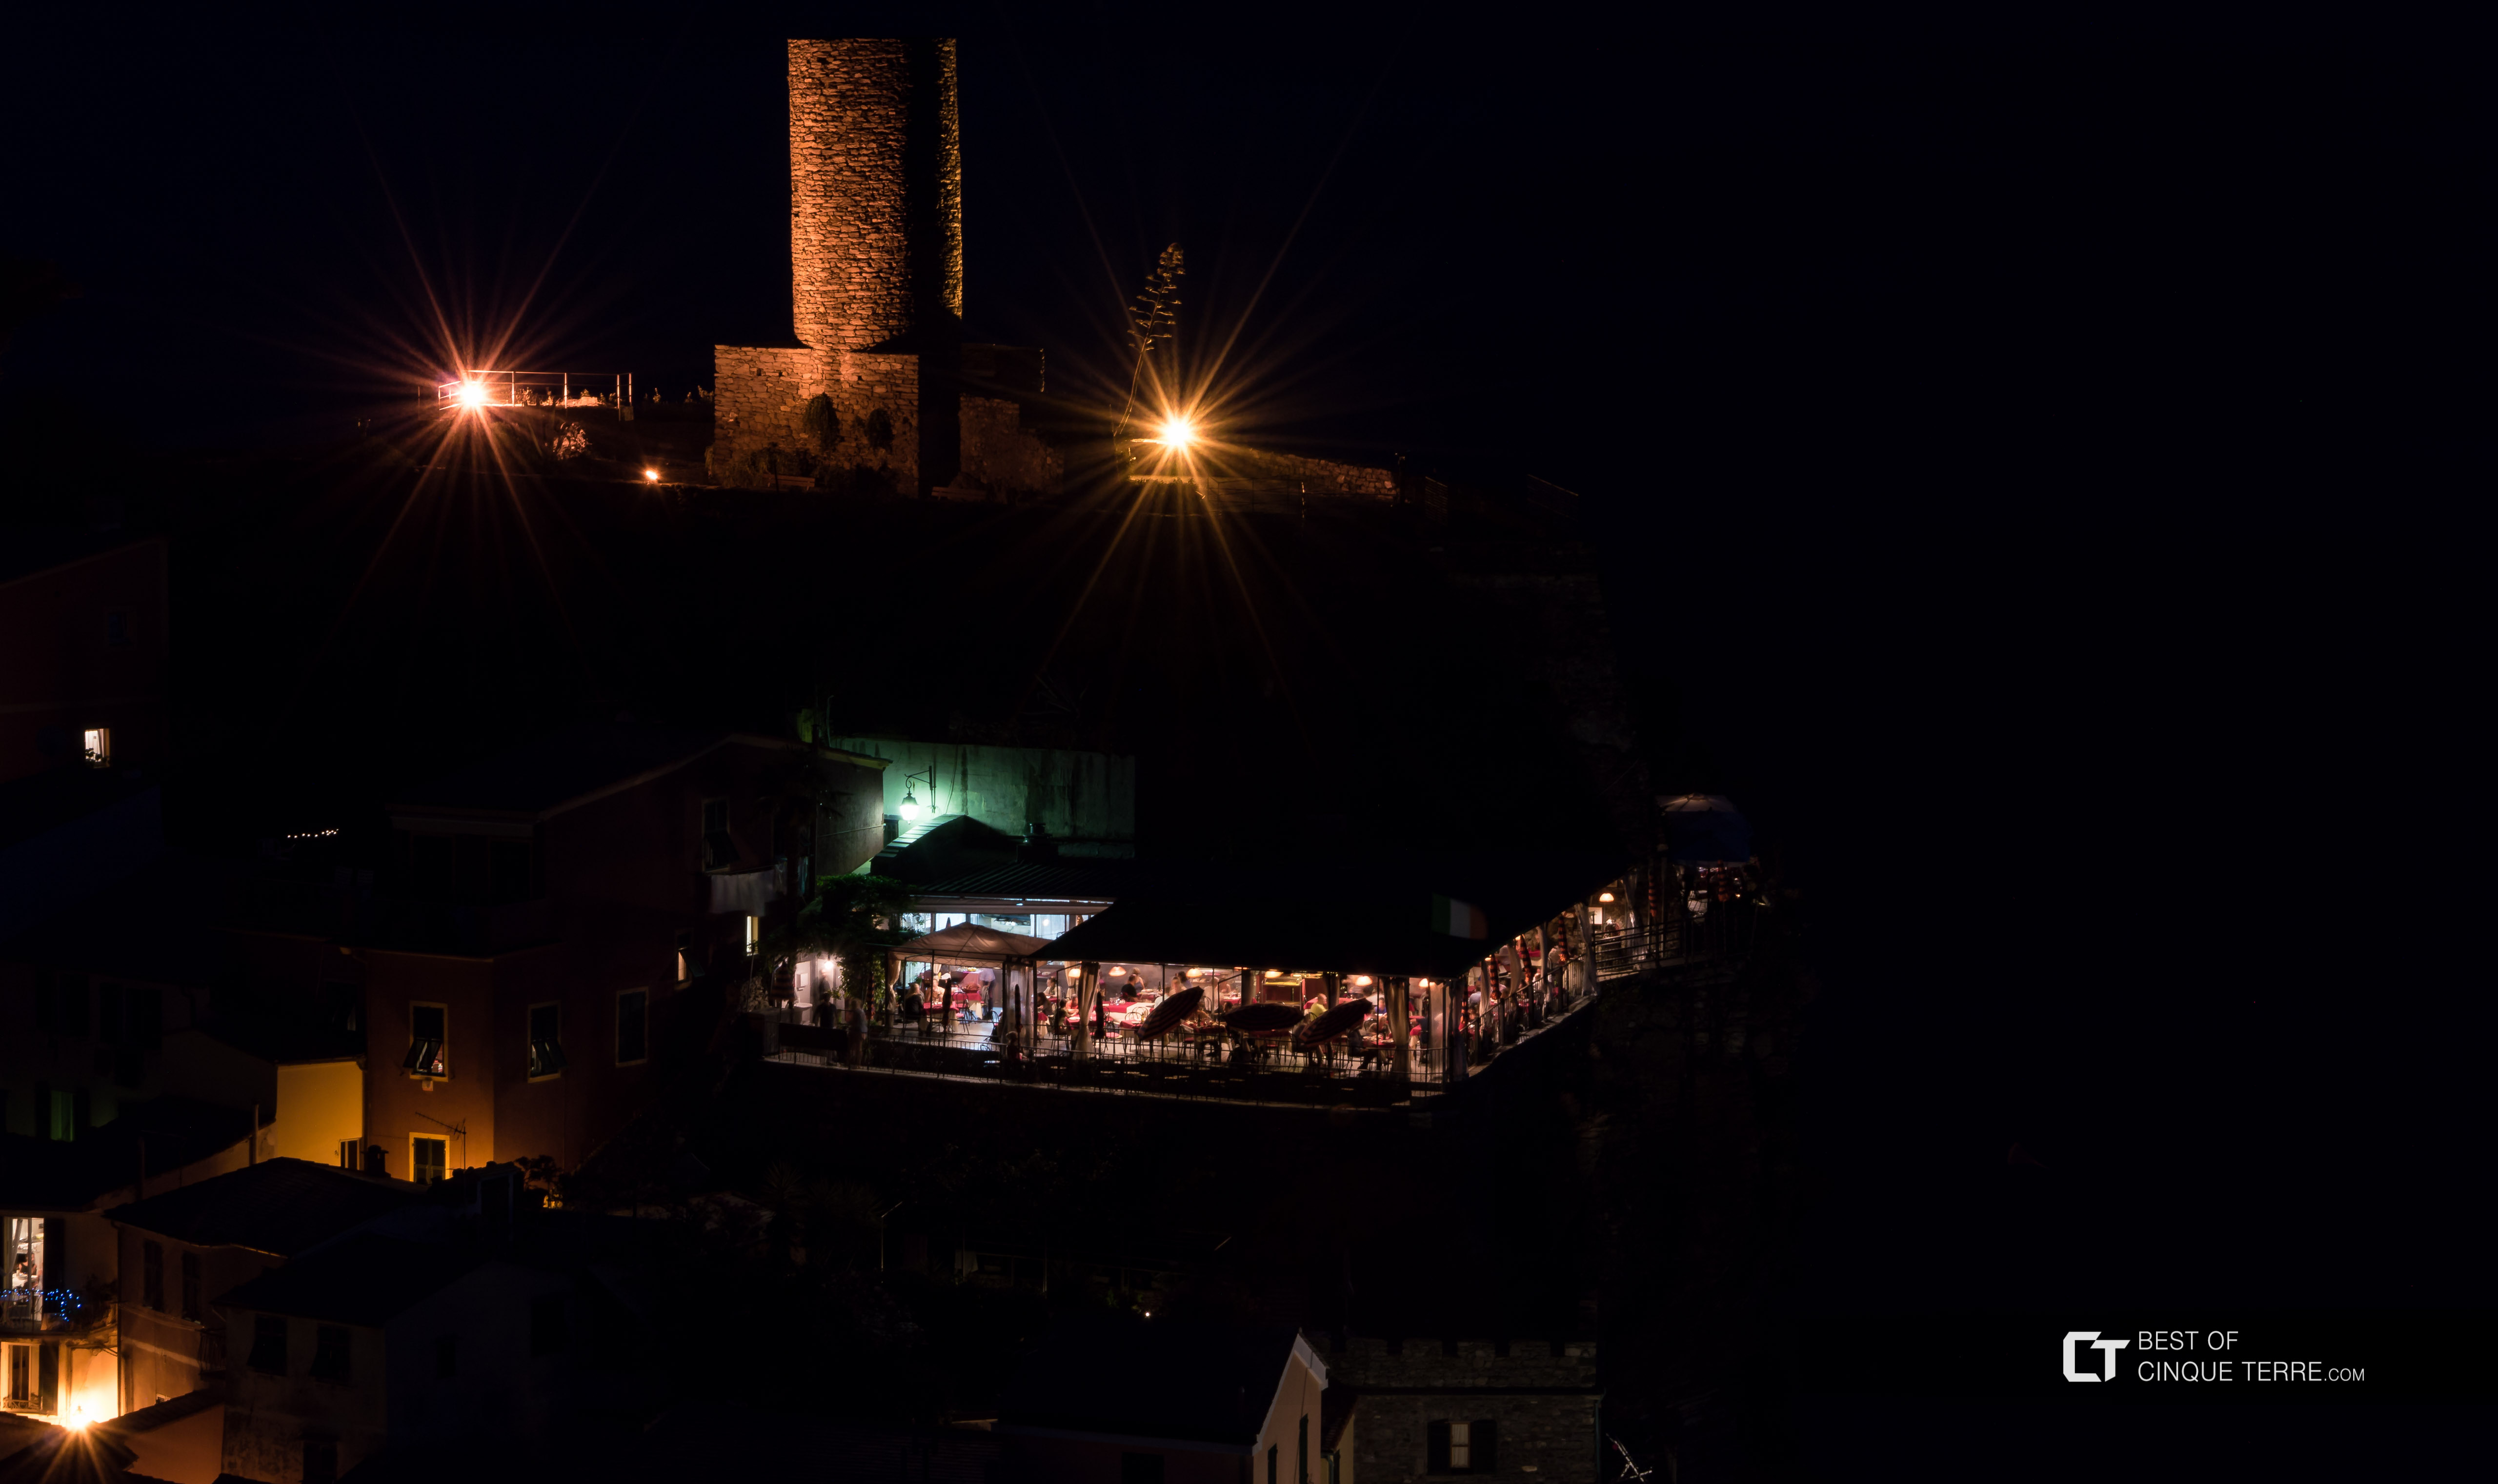 Restaurant Belforte by night, Vernazza, Cinque Terre, Italy